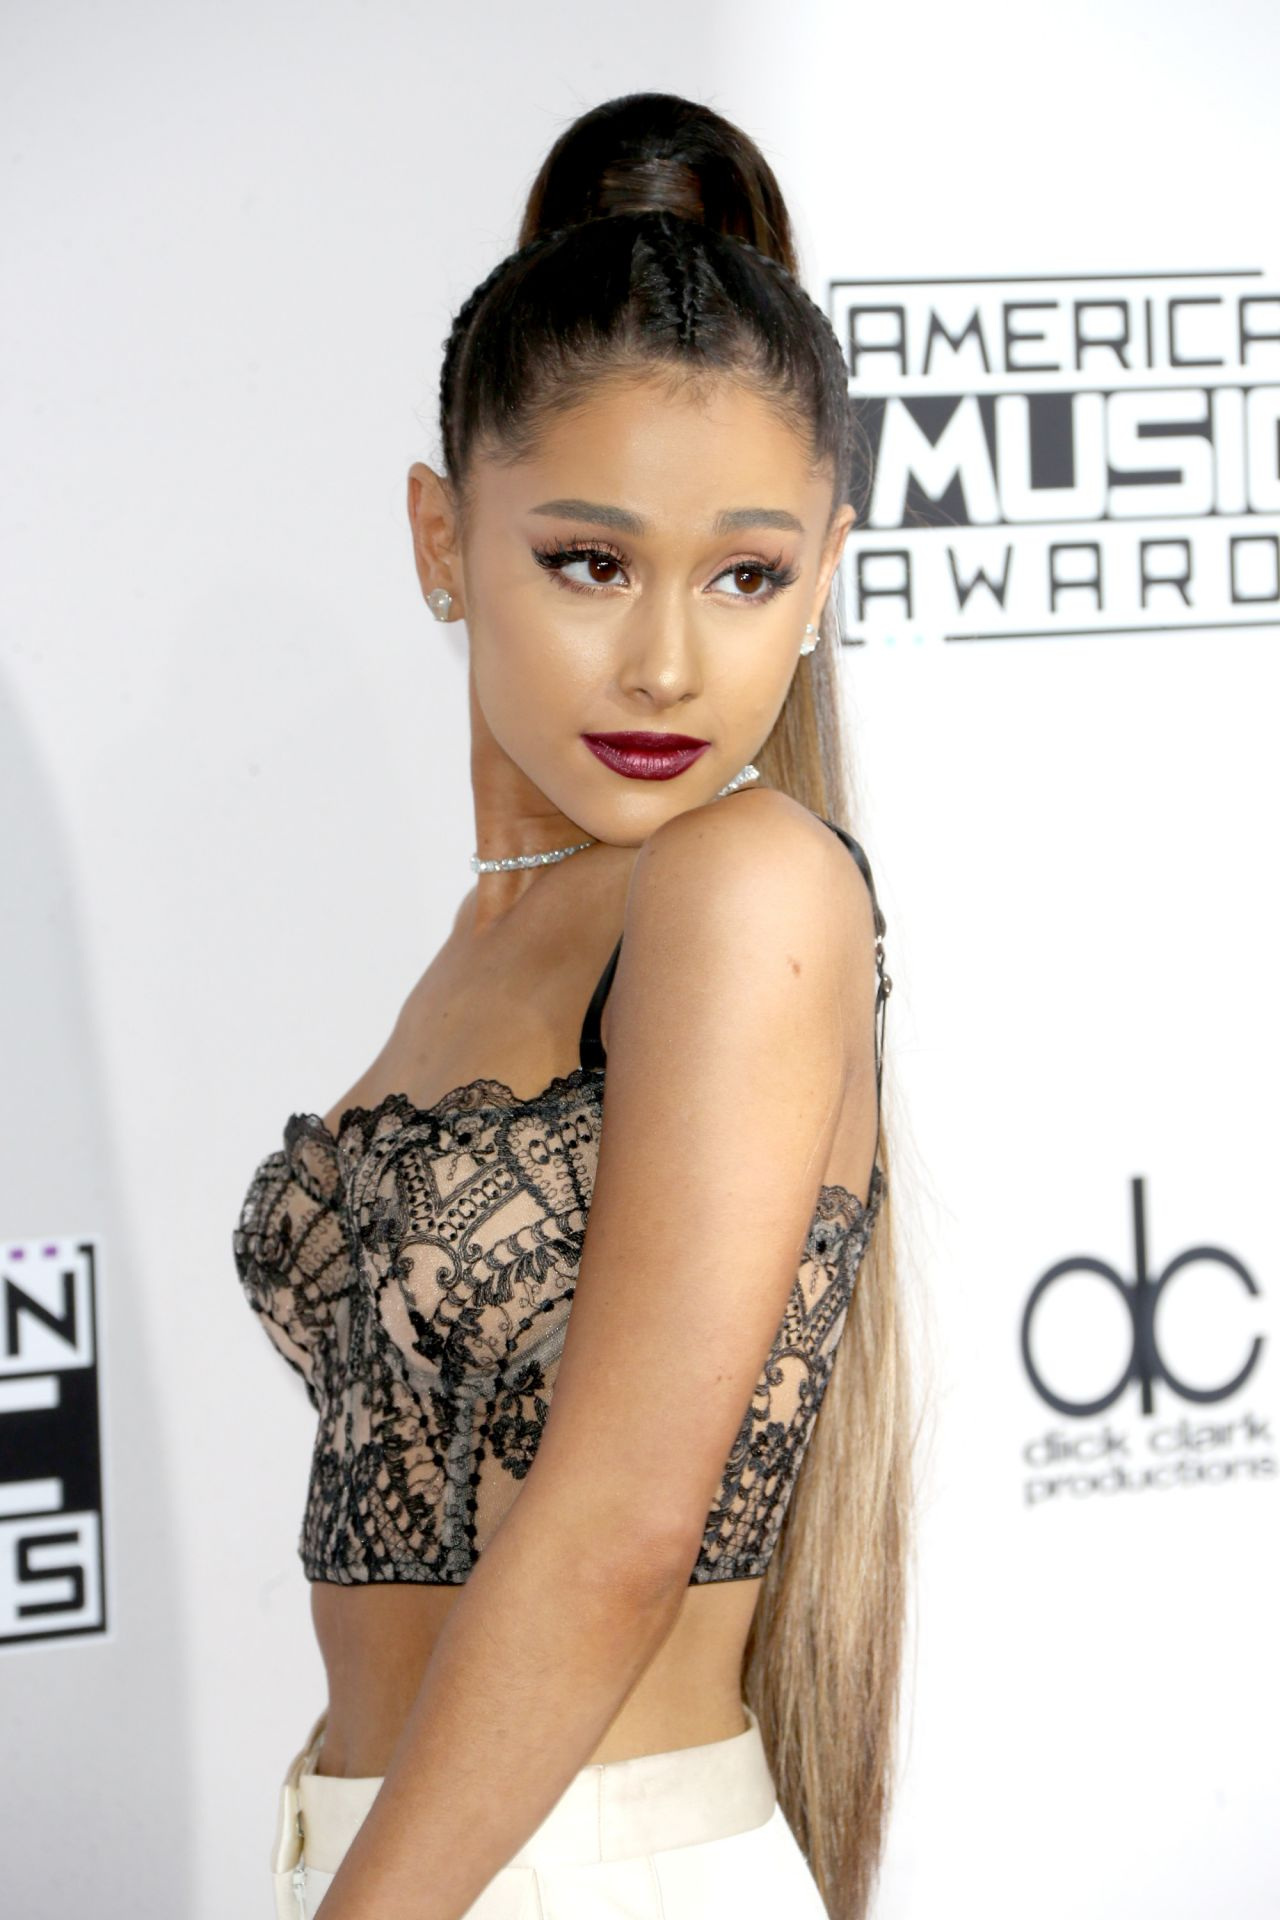 Ariana Grande Latest Photos Celebmafia